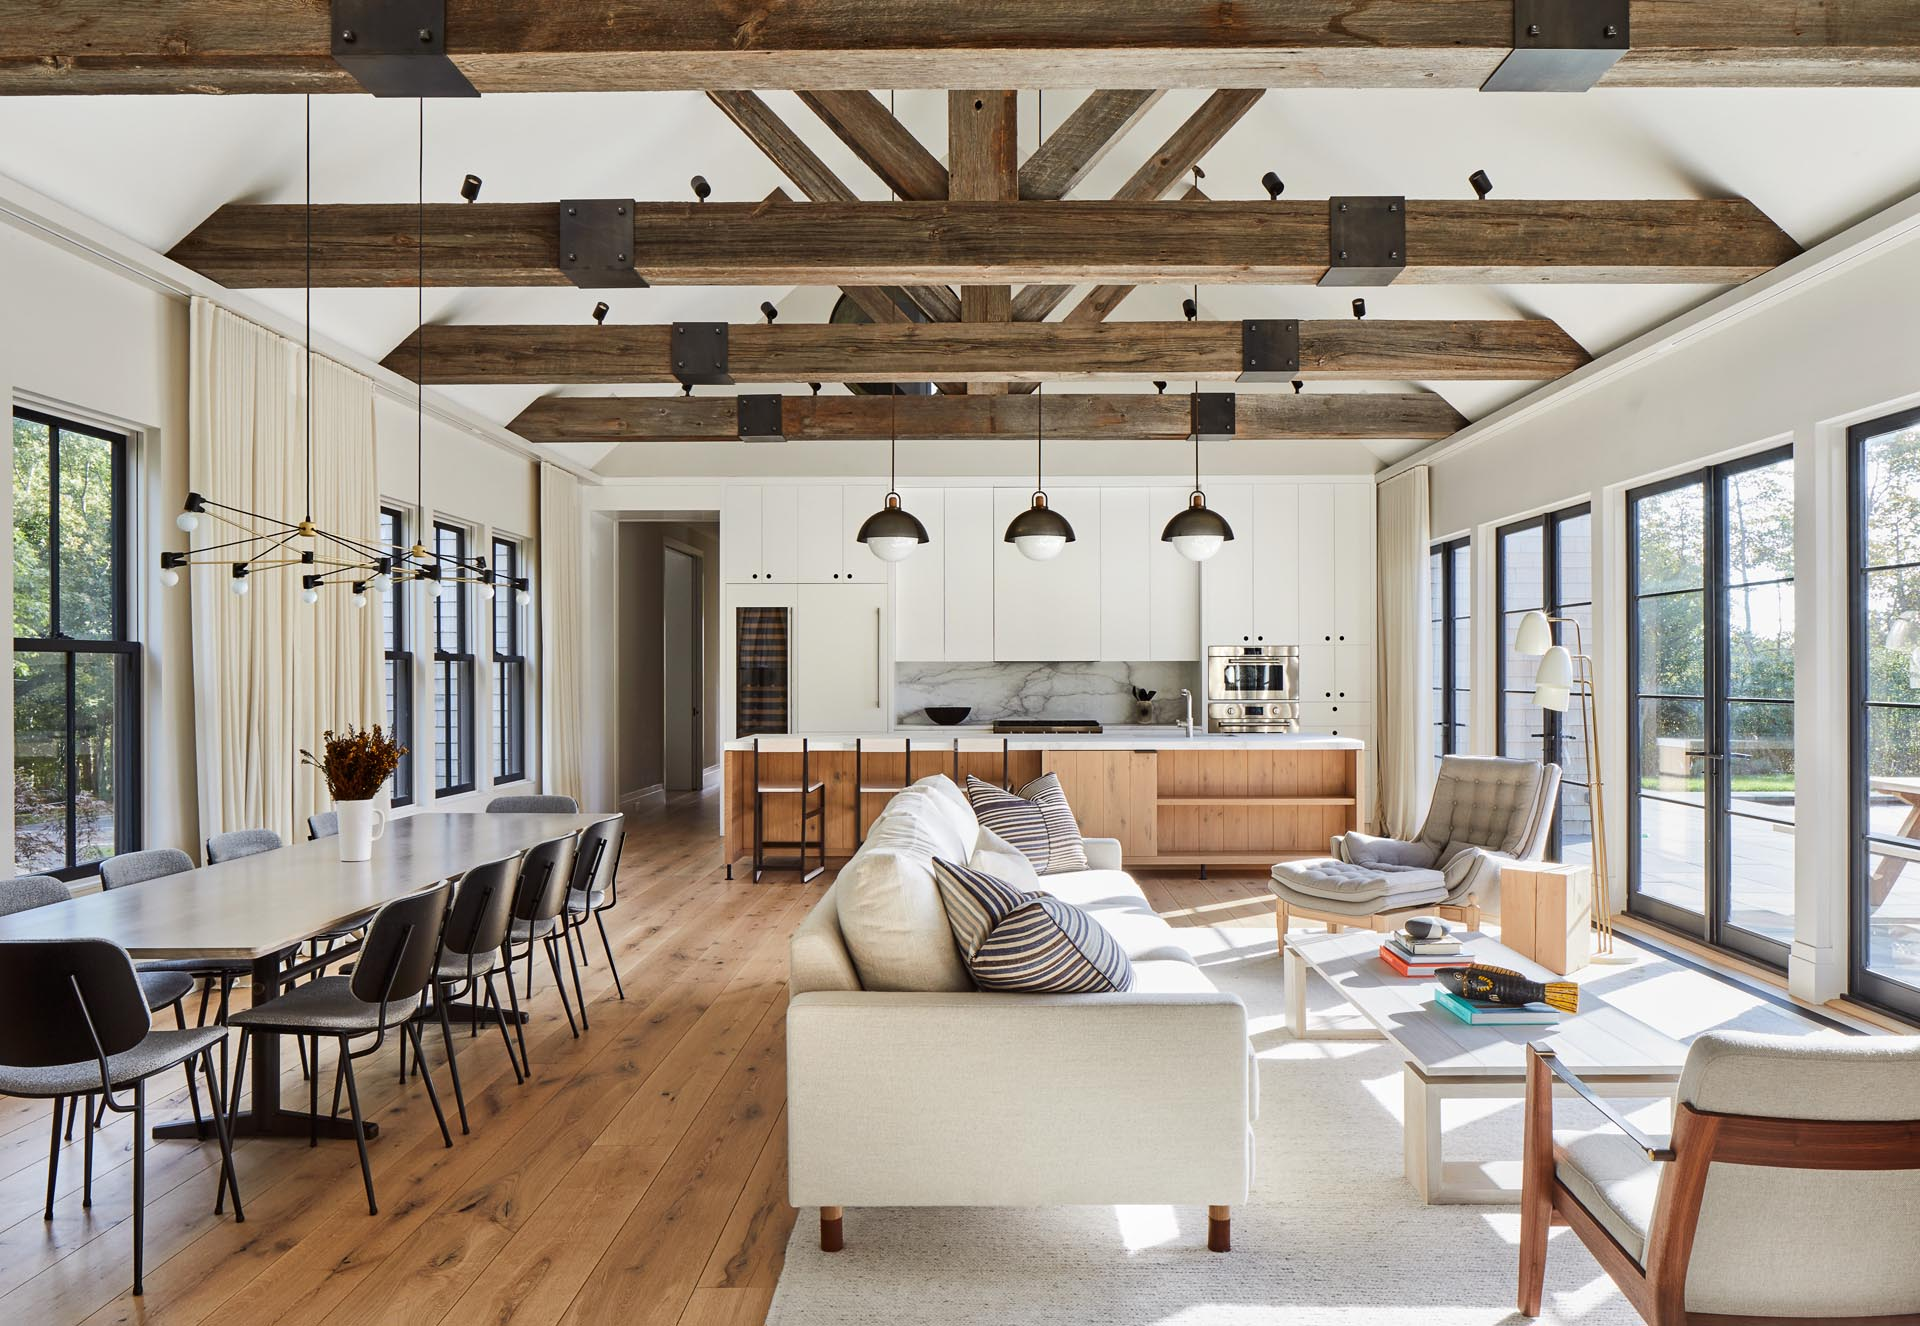 This modern farmhouse great room has plenty of room for the living room, dining area, and kitchen, with exposed beams, and windows on one side, and doors on the other.